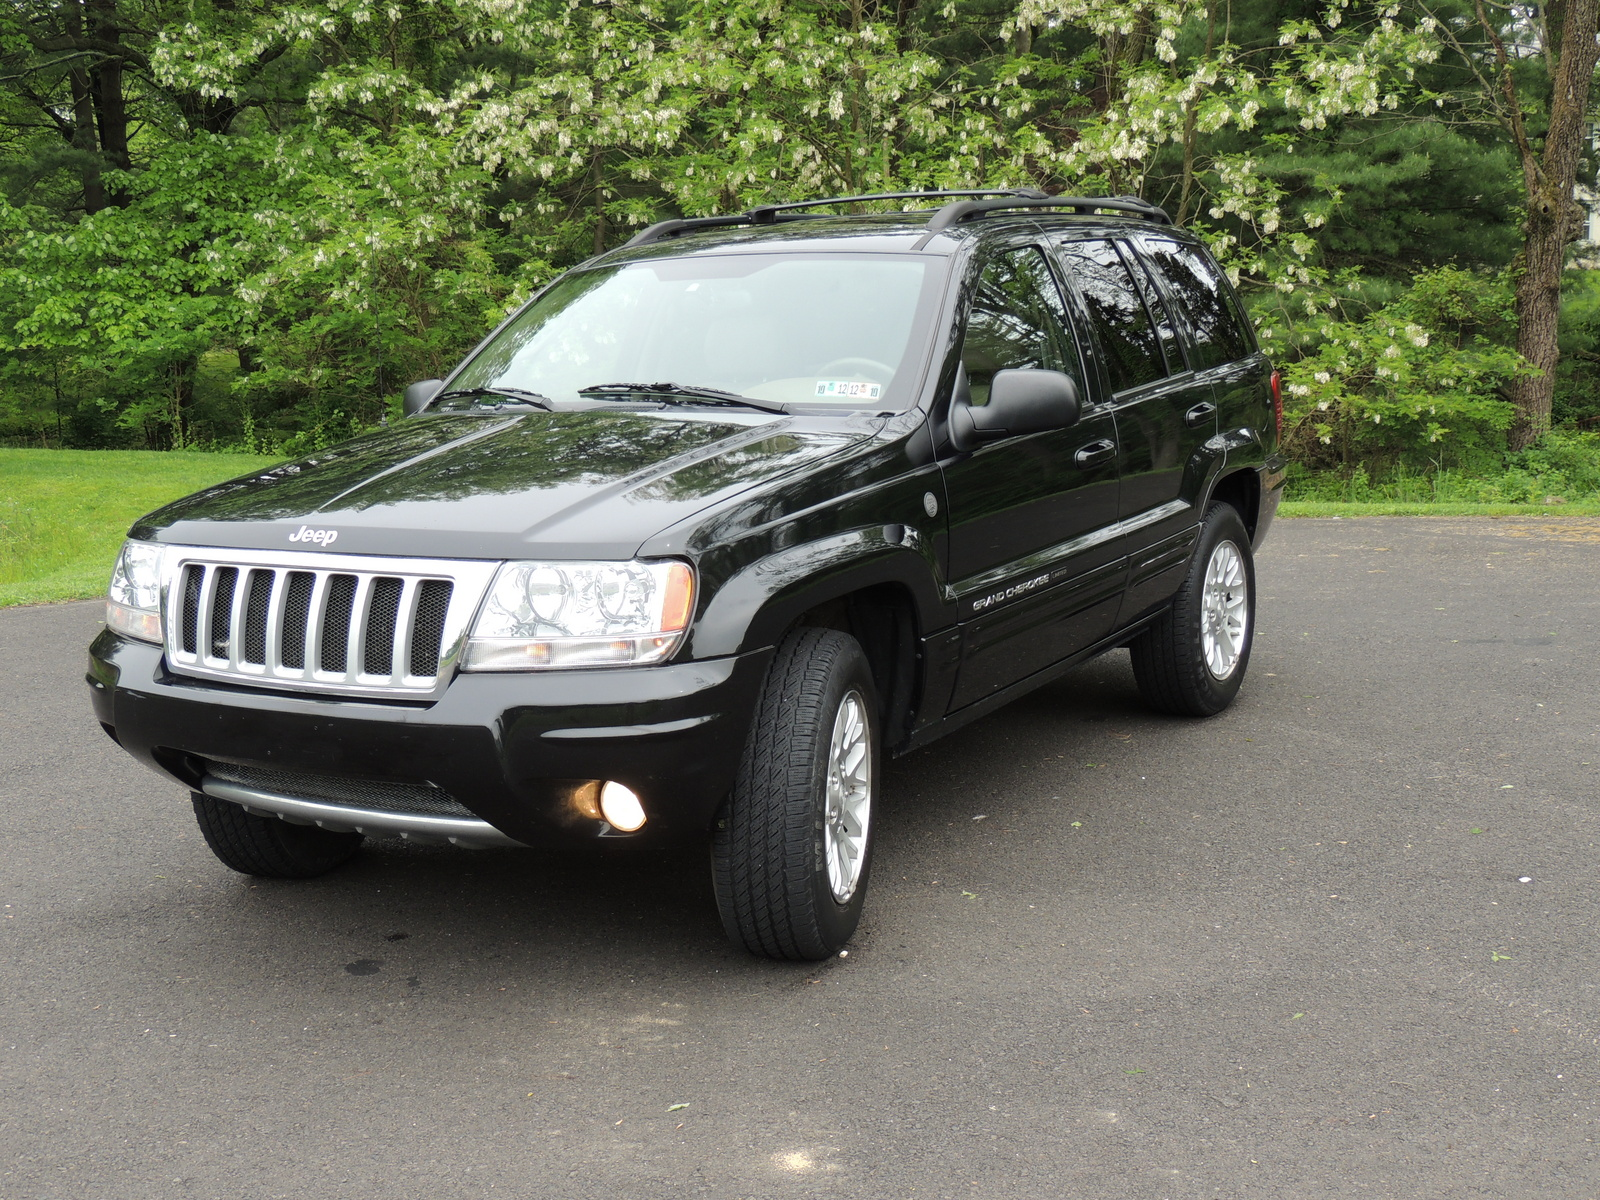 used 2004 jeep grand cherokee limited for sale cargurus autos post. Black Bedroom Furniture Sets. Home Design Ideas